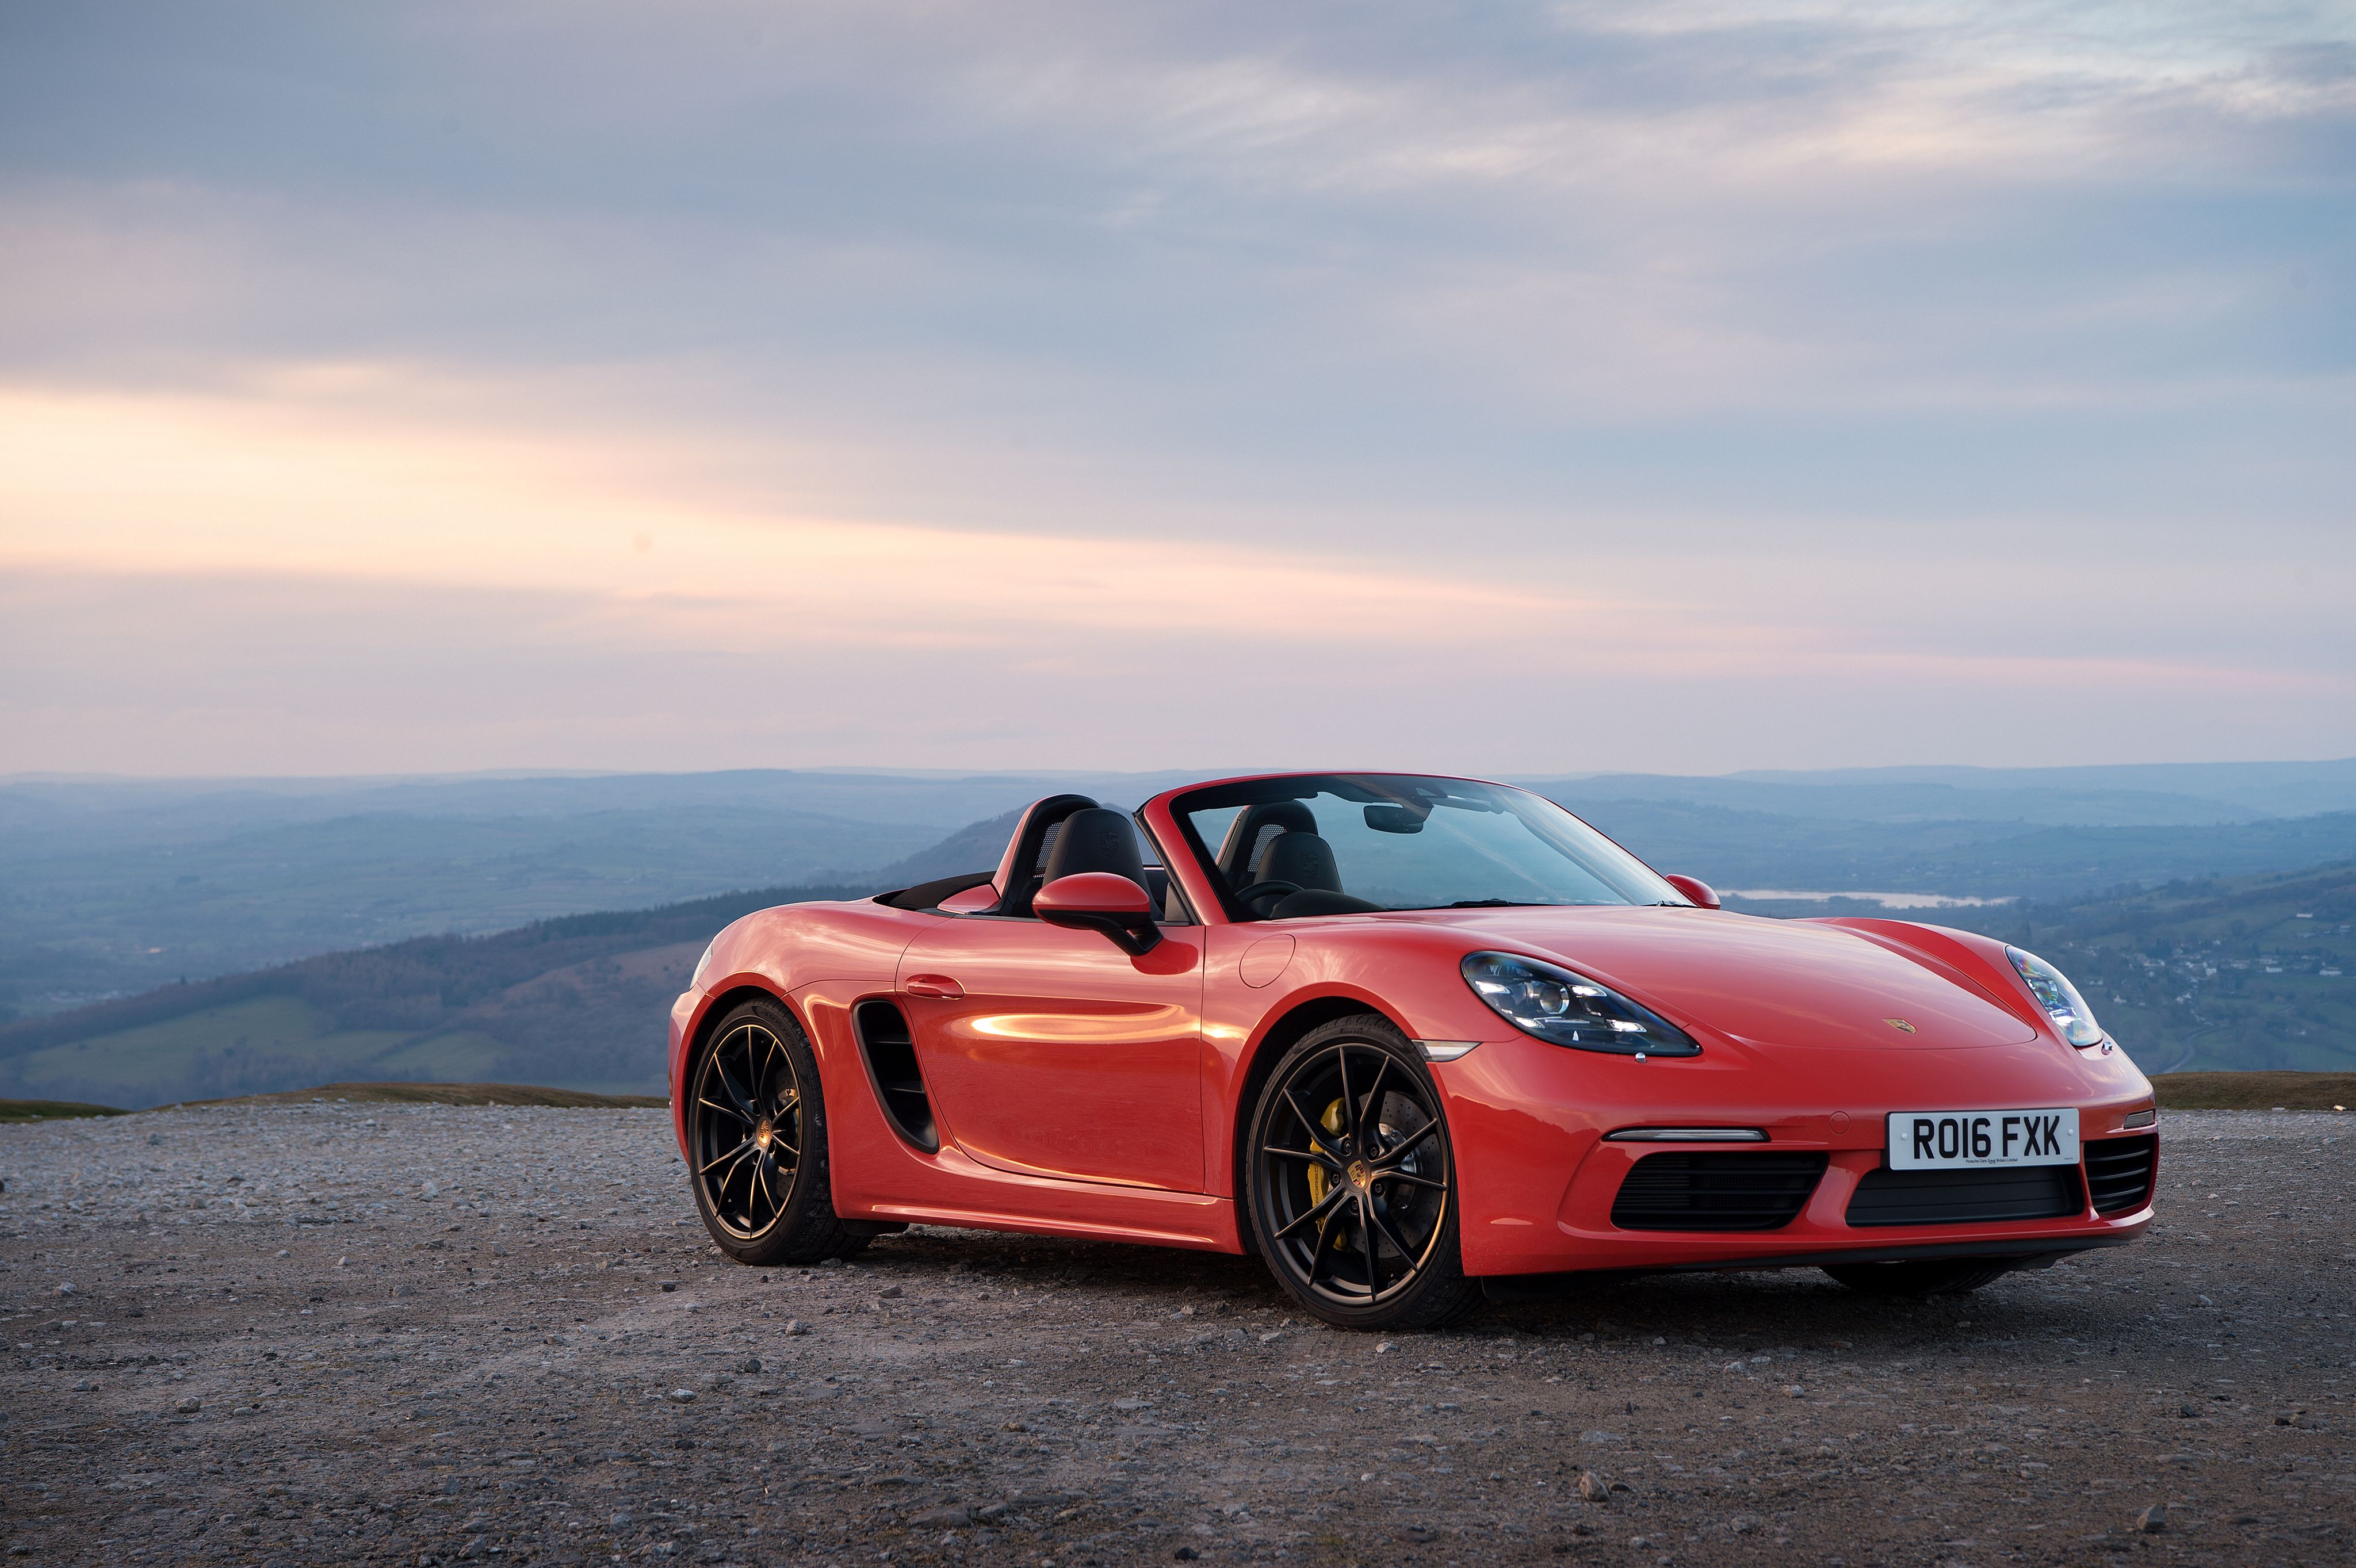 Red Car Convertible Porsche 718 Boxster on the backgrounds of the